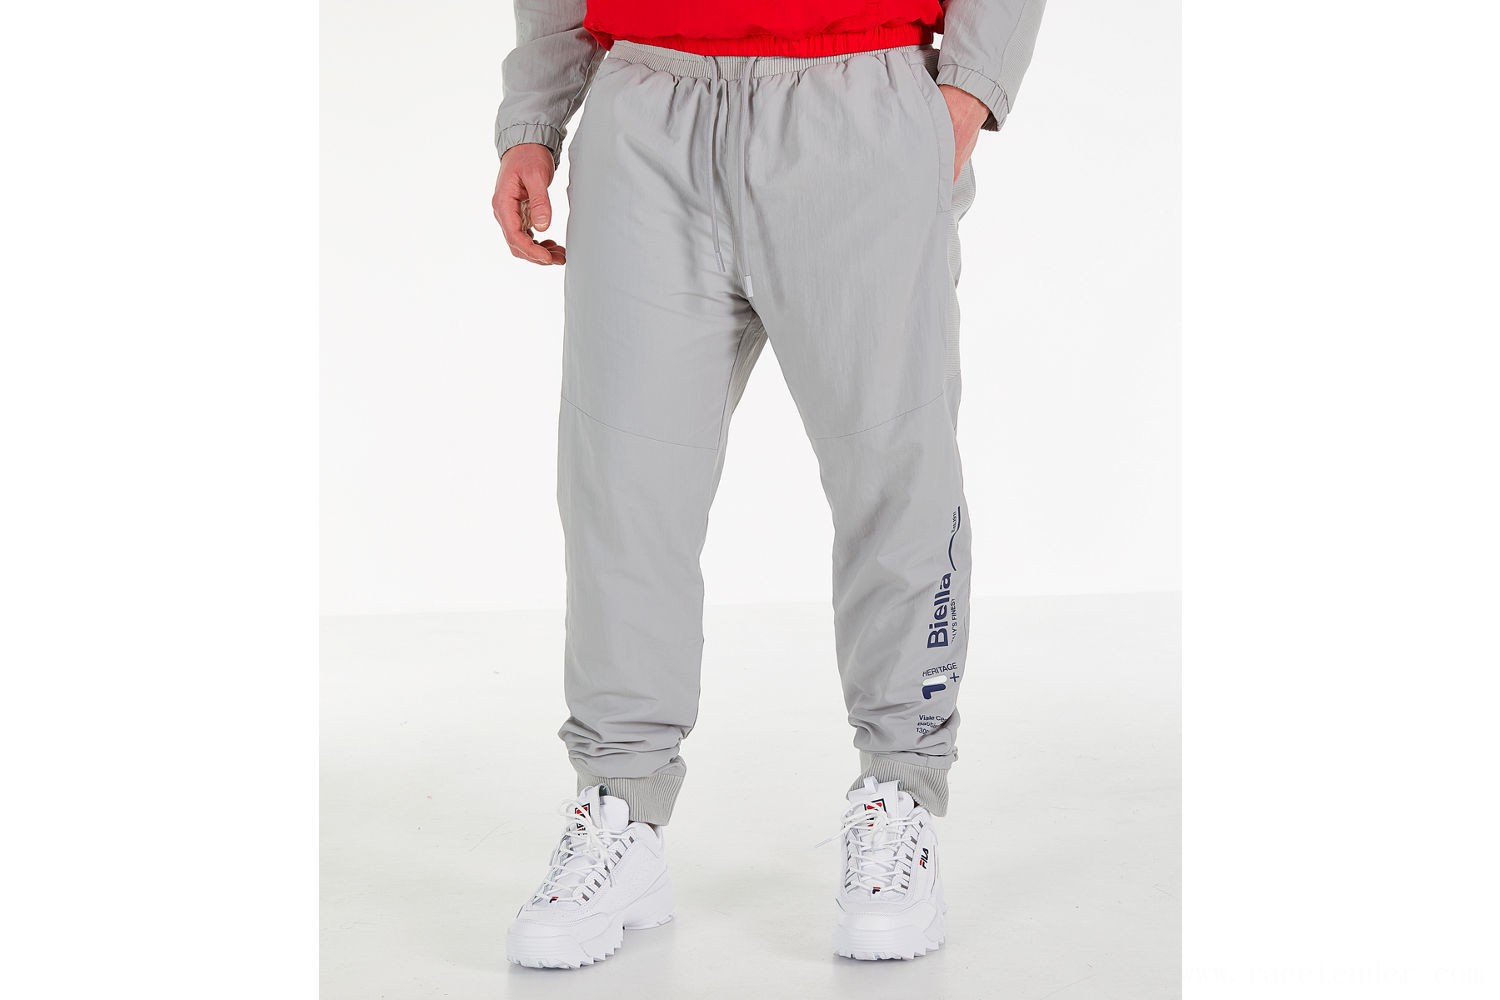 Fila Men's Orko Fleece Pants - Grey